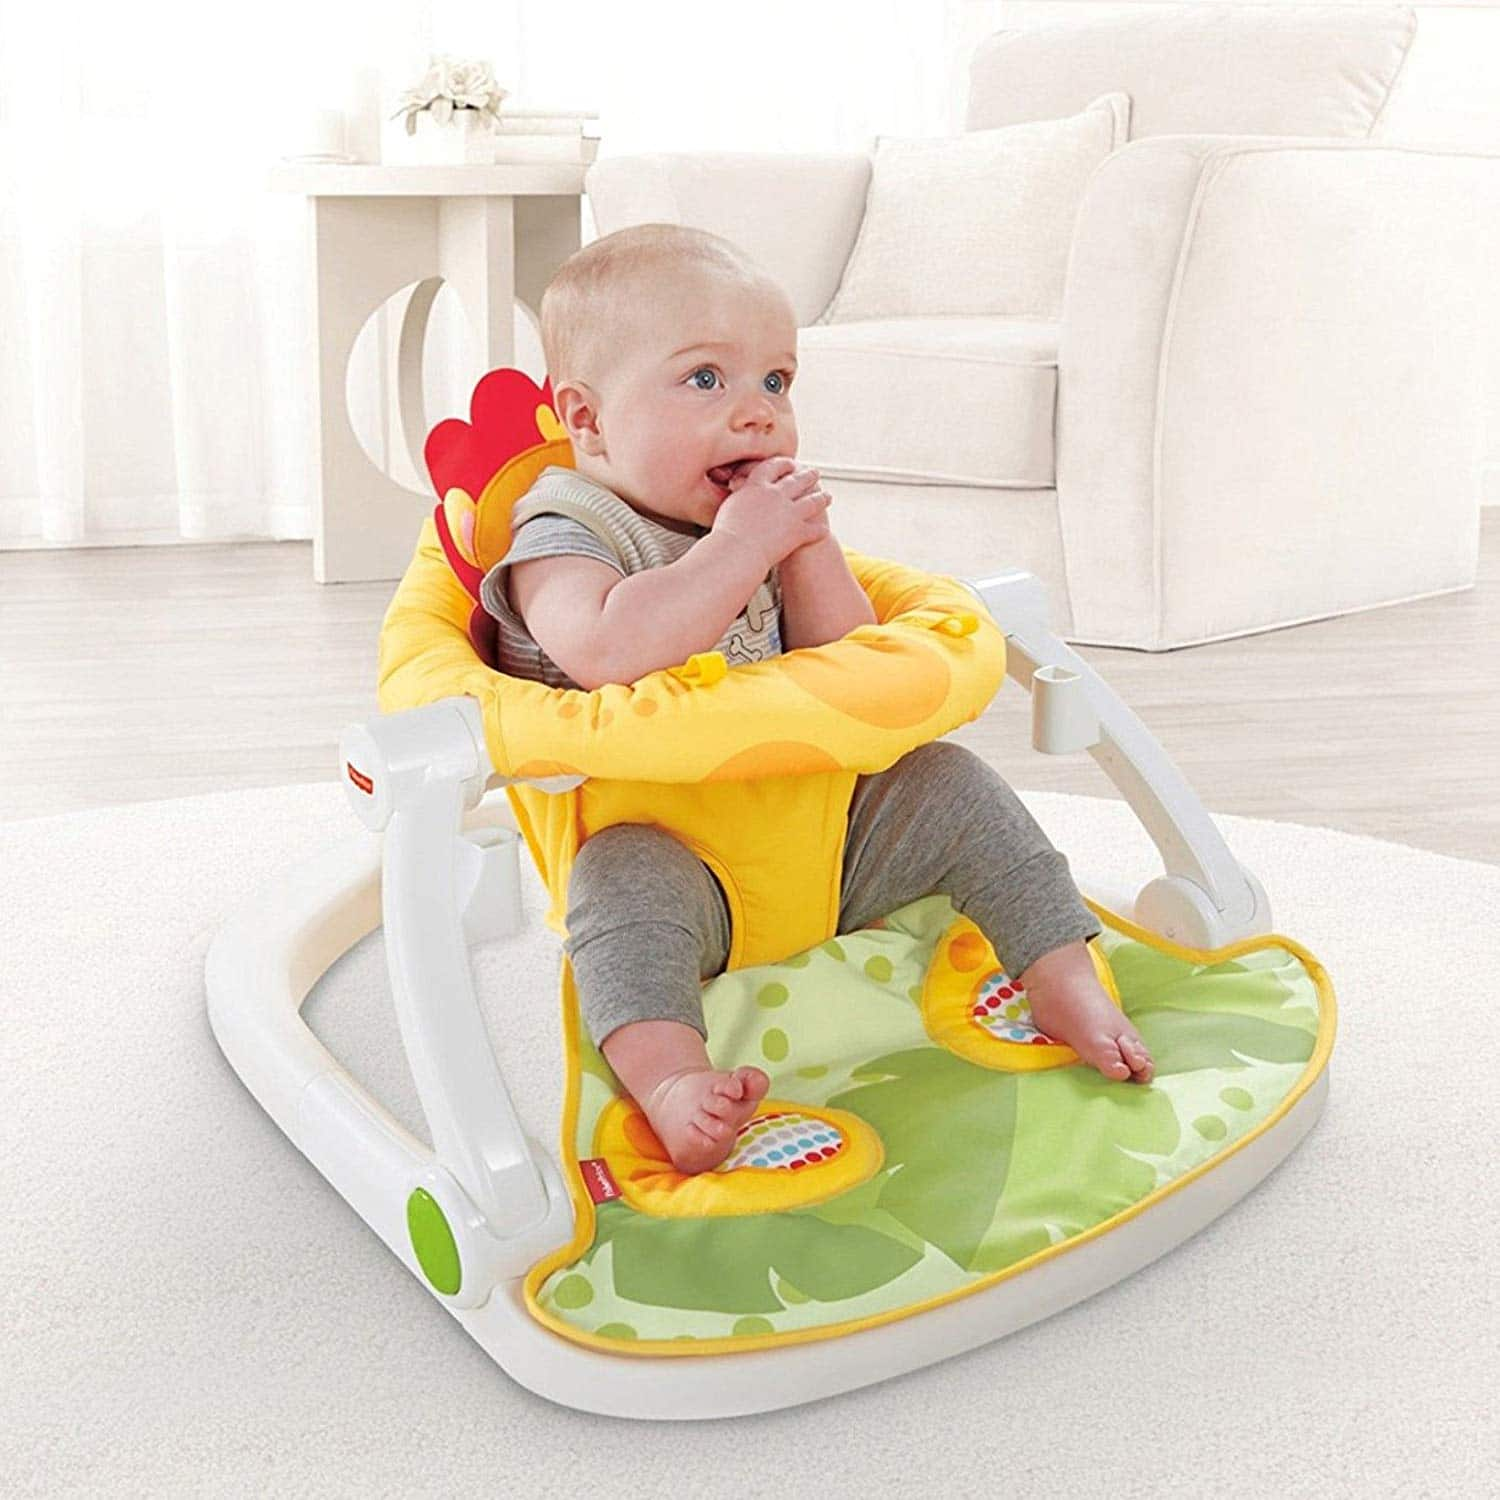 Fisher-Price Sit Me Up Floor Seat with Tray $42.49, 15% off) on Amazon for Prime Members